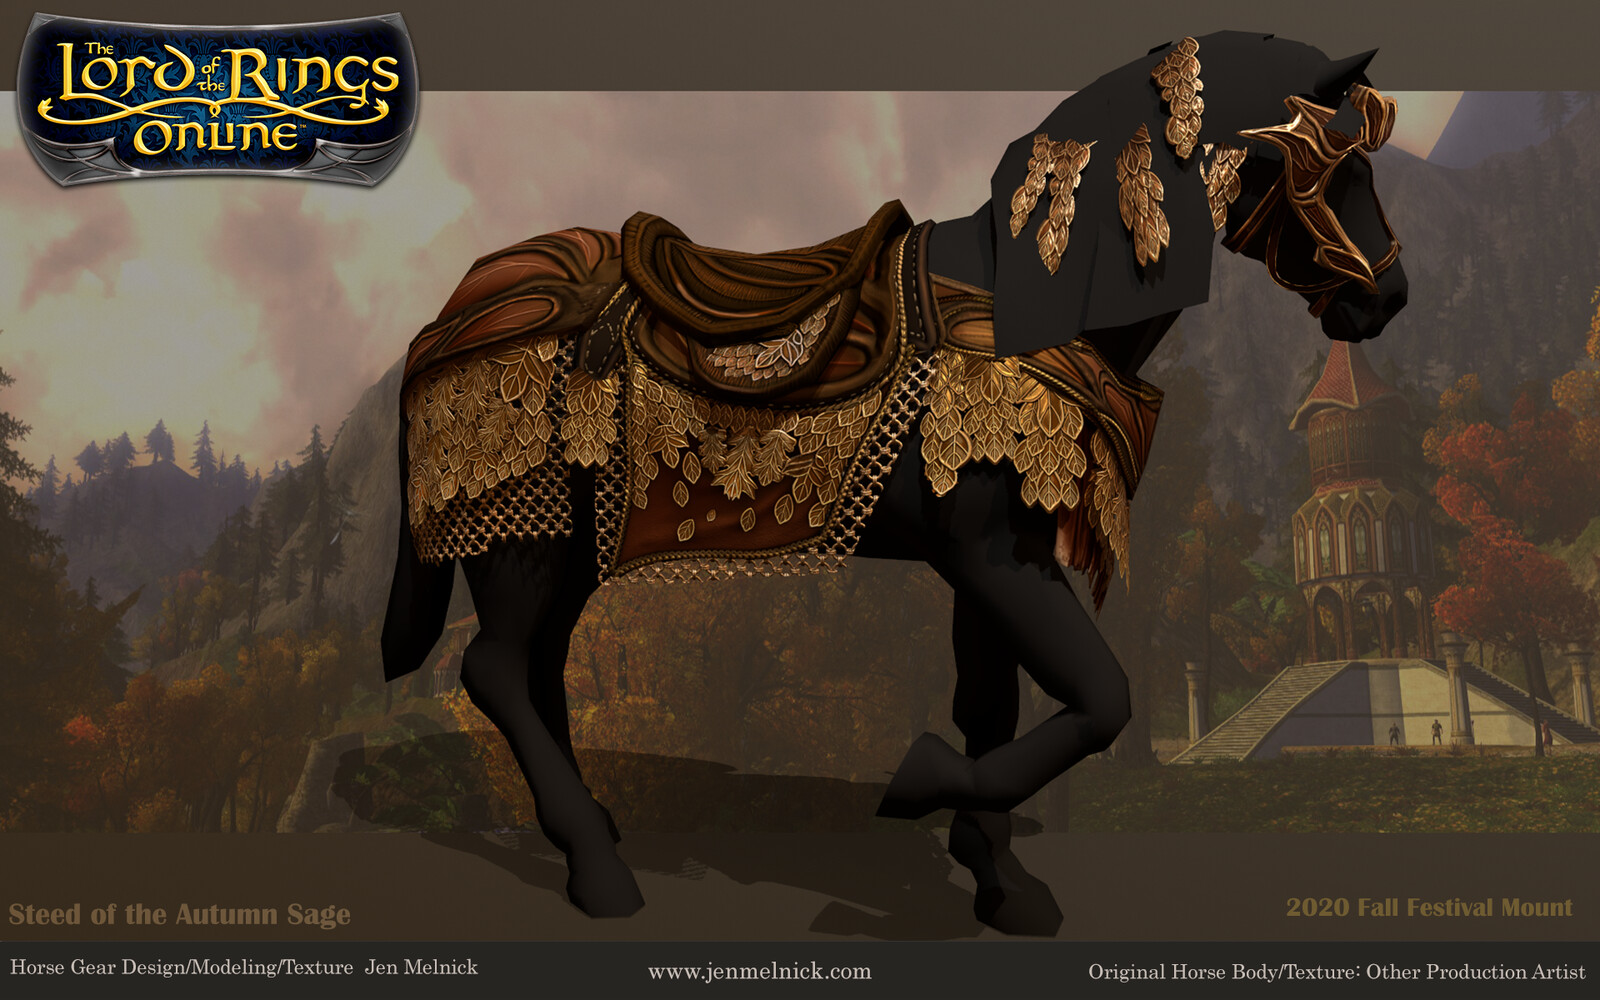 2020 Fall Festival Mount Steed of the Autumn Sage Marmoset Render